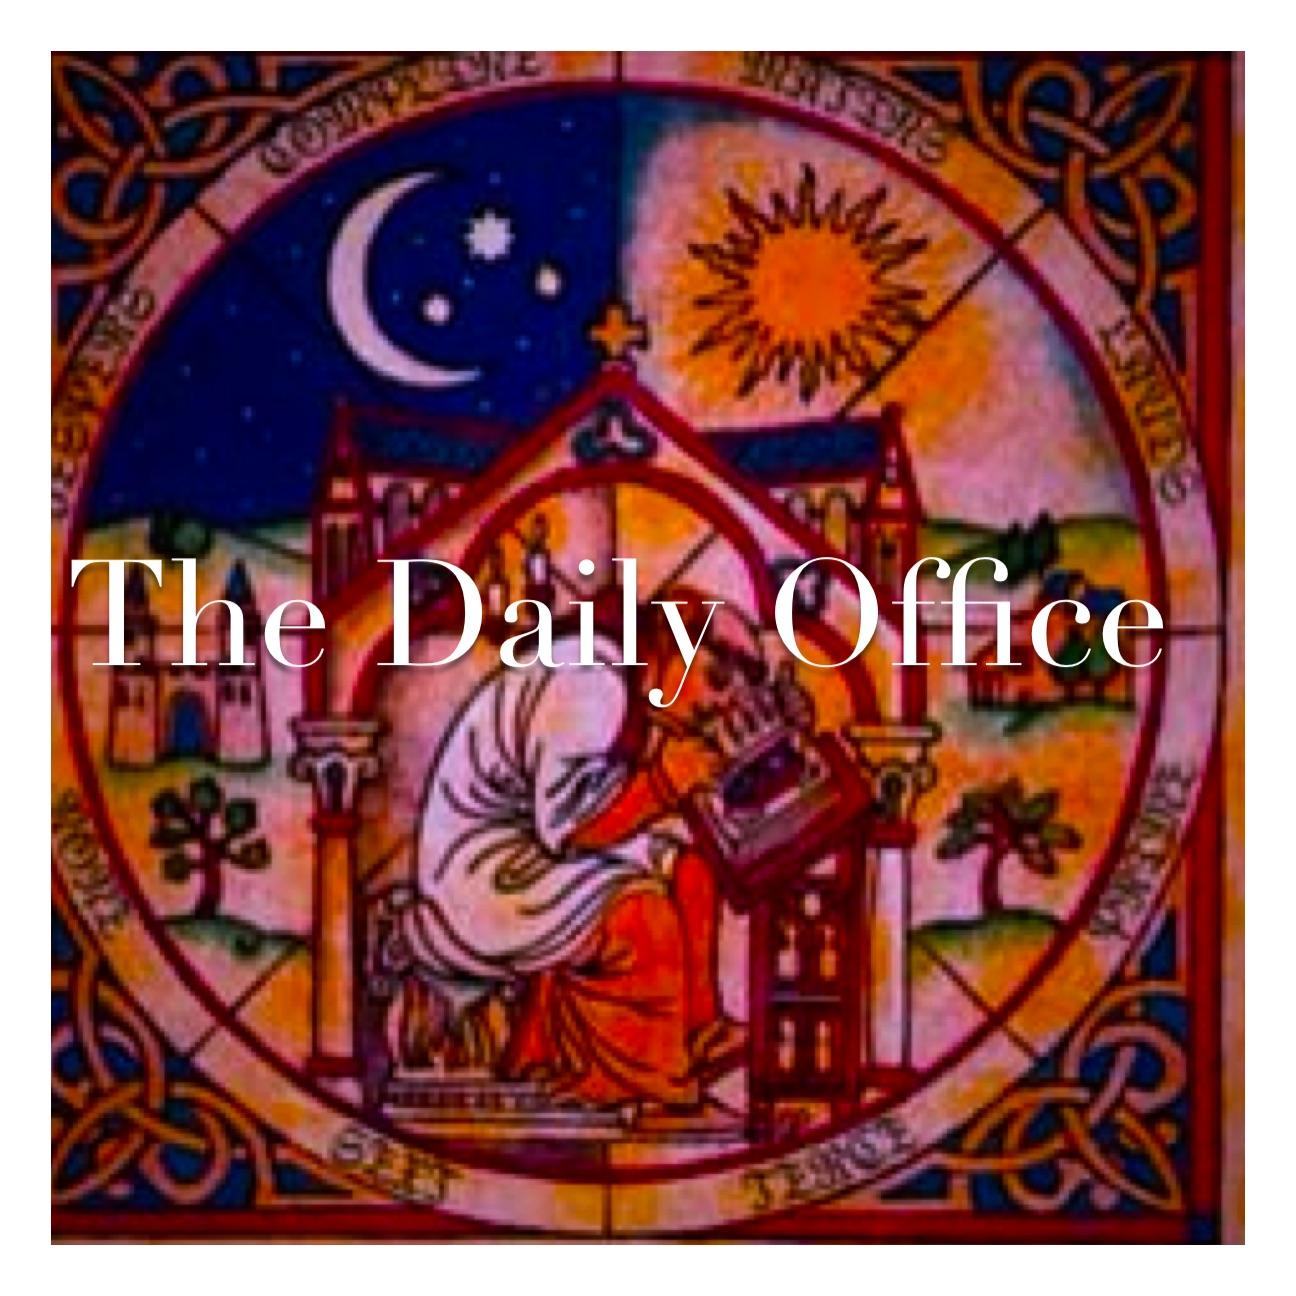 4 Reasons I Pray The Daily Office   The Anglican Mission Pertaining To Four Volume Liturgy Of The Hours Calendar 2020